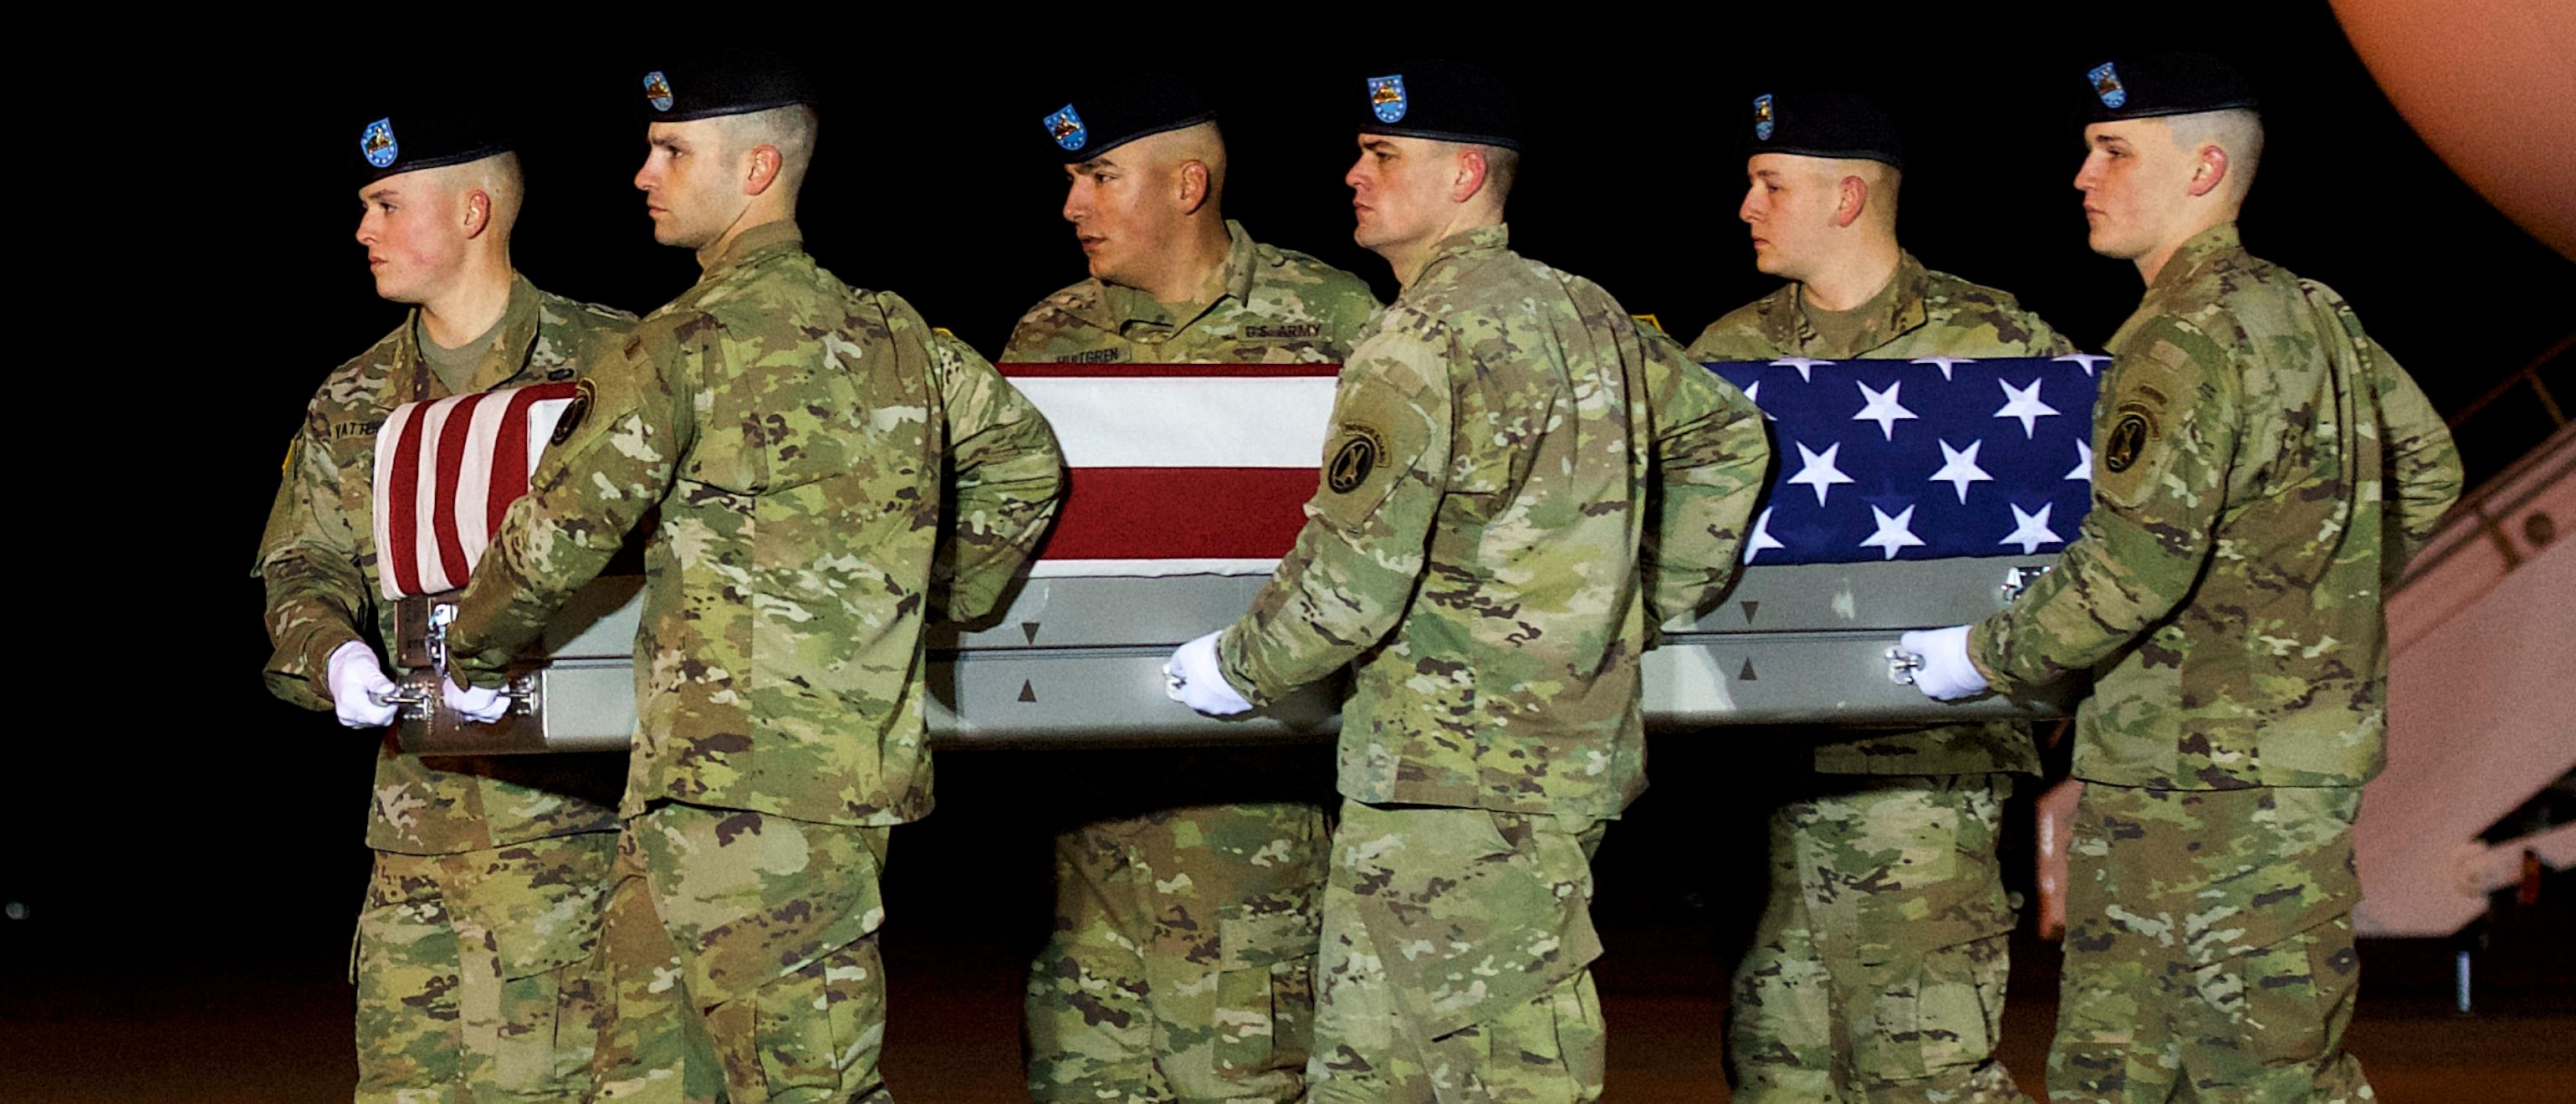 DOVER, DE - NOVEMBER 27: Armed forces carry a transfer case covered with an American flag during a dignified transfer for fallen service member Sergeant Leandro A.S. Jasso on November 27, 2018 in Dover, Delaware. Sgt. Jasso of Leavenworth, Washington was killed in Afghanistan while engaging enemy forces. (Photo by Mark Makela/Getty Images)